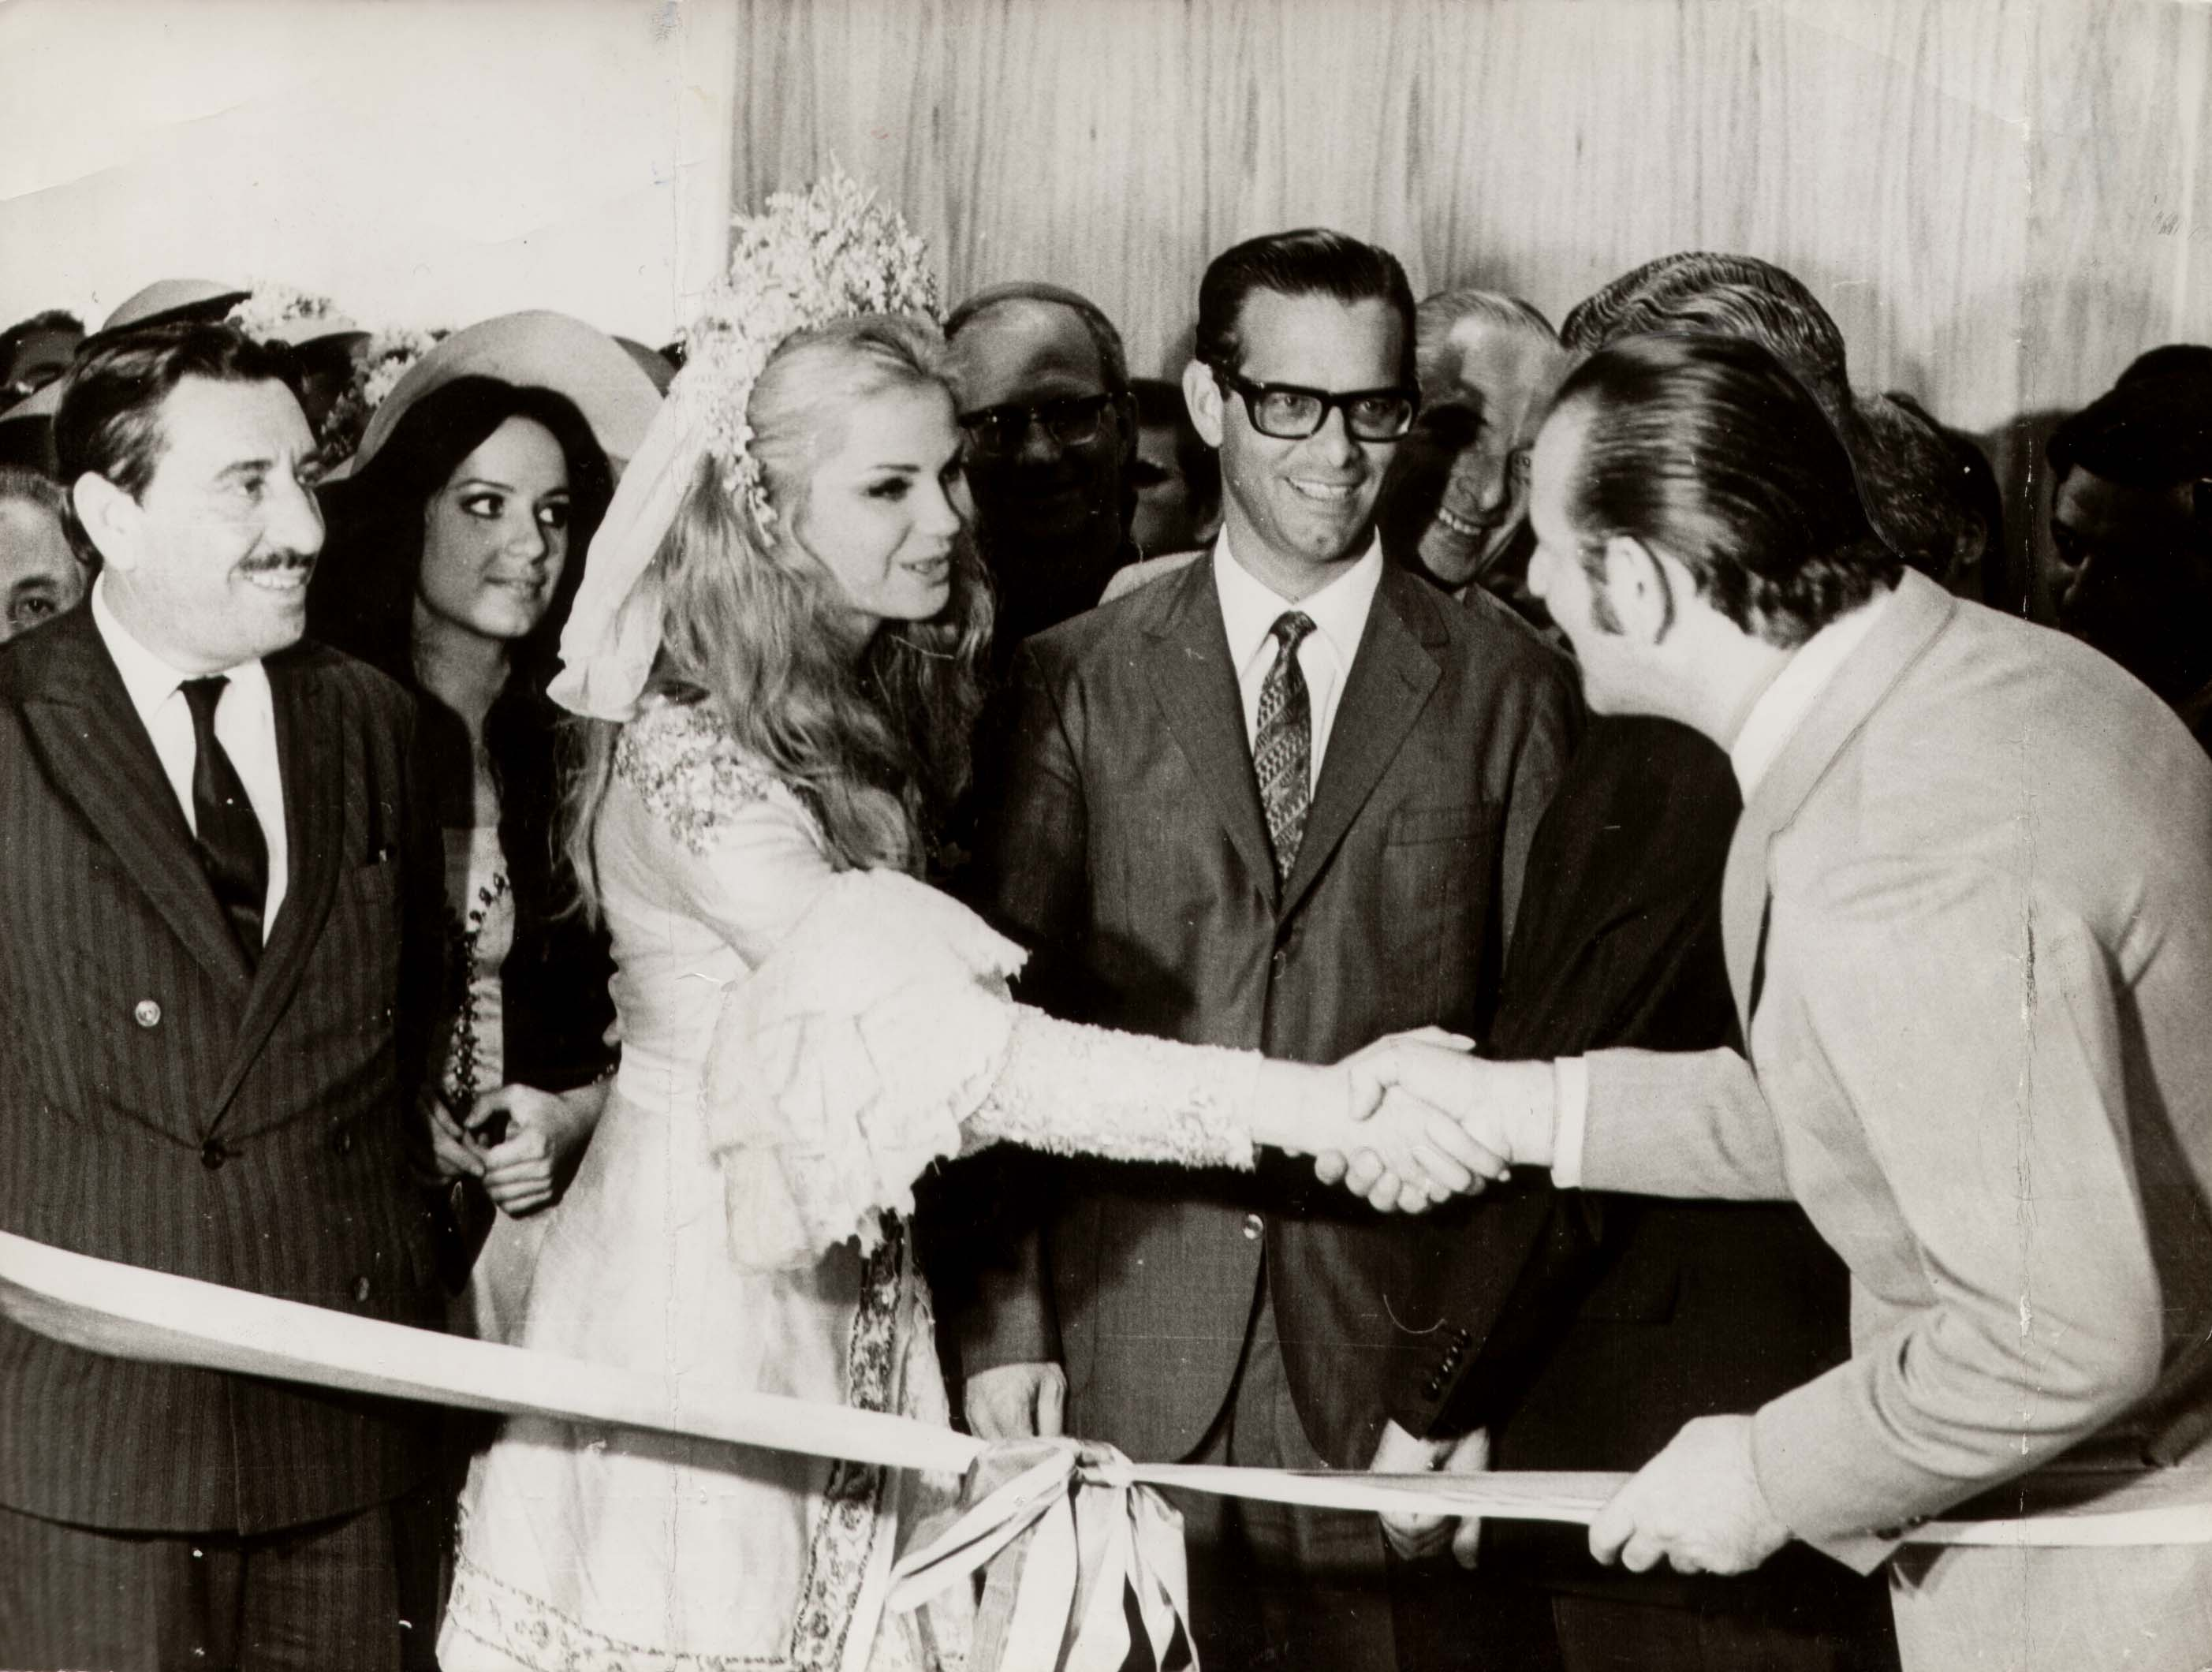 1969 - Maurício Sirostky Sobrinho salutes the queen of Caxias do Sul annual Grape Fair (Festa da Uva) in the inauguration of TV Caxias (now RBS TV Caxias).